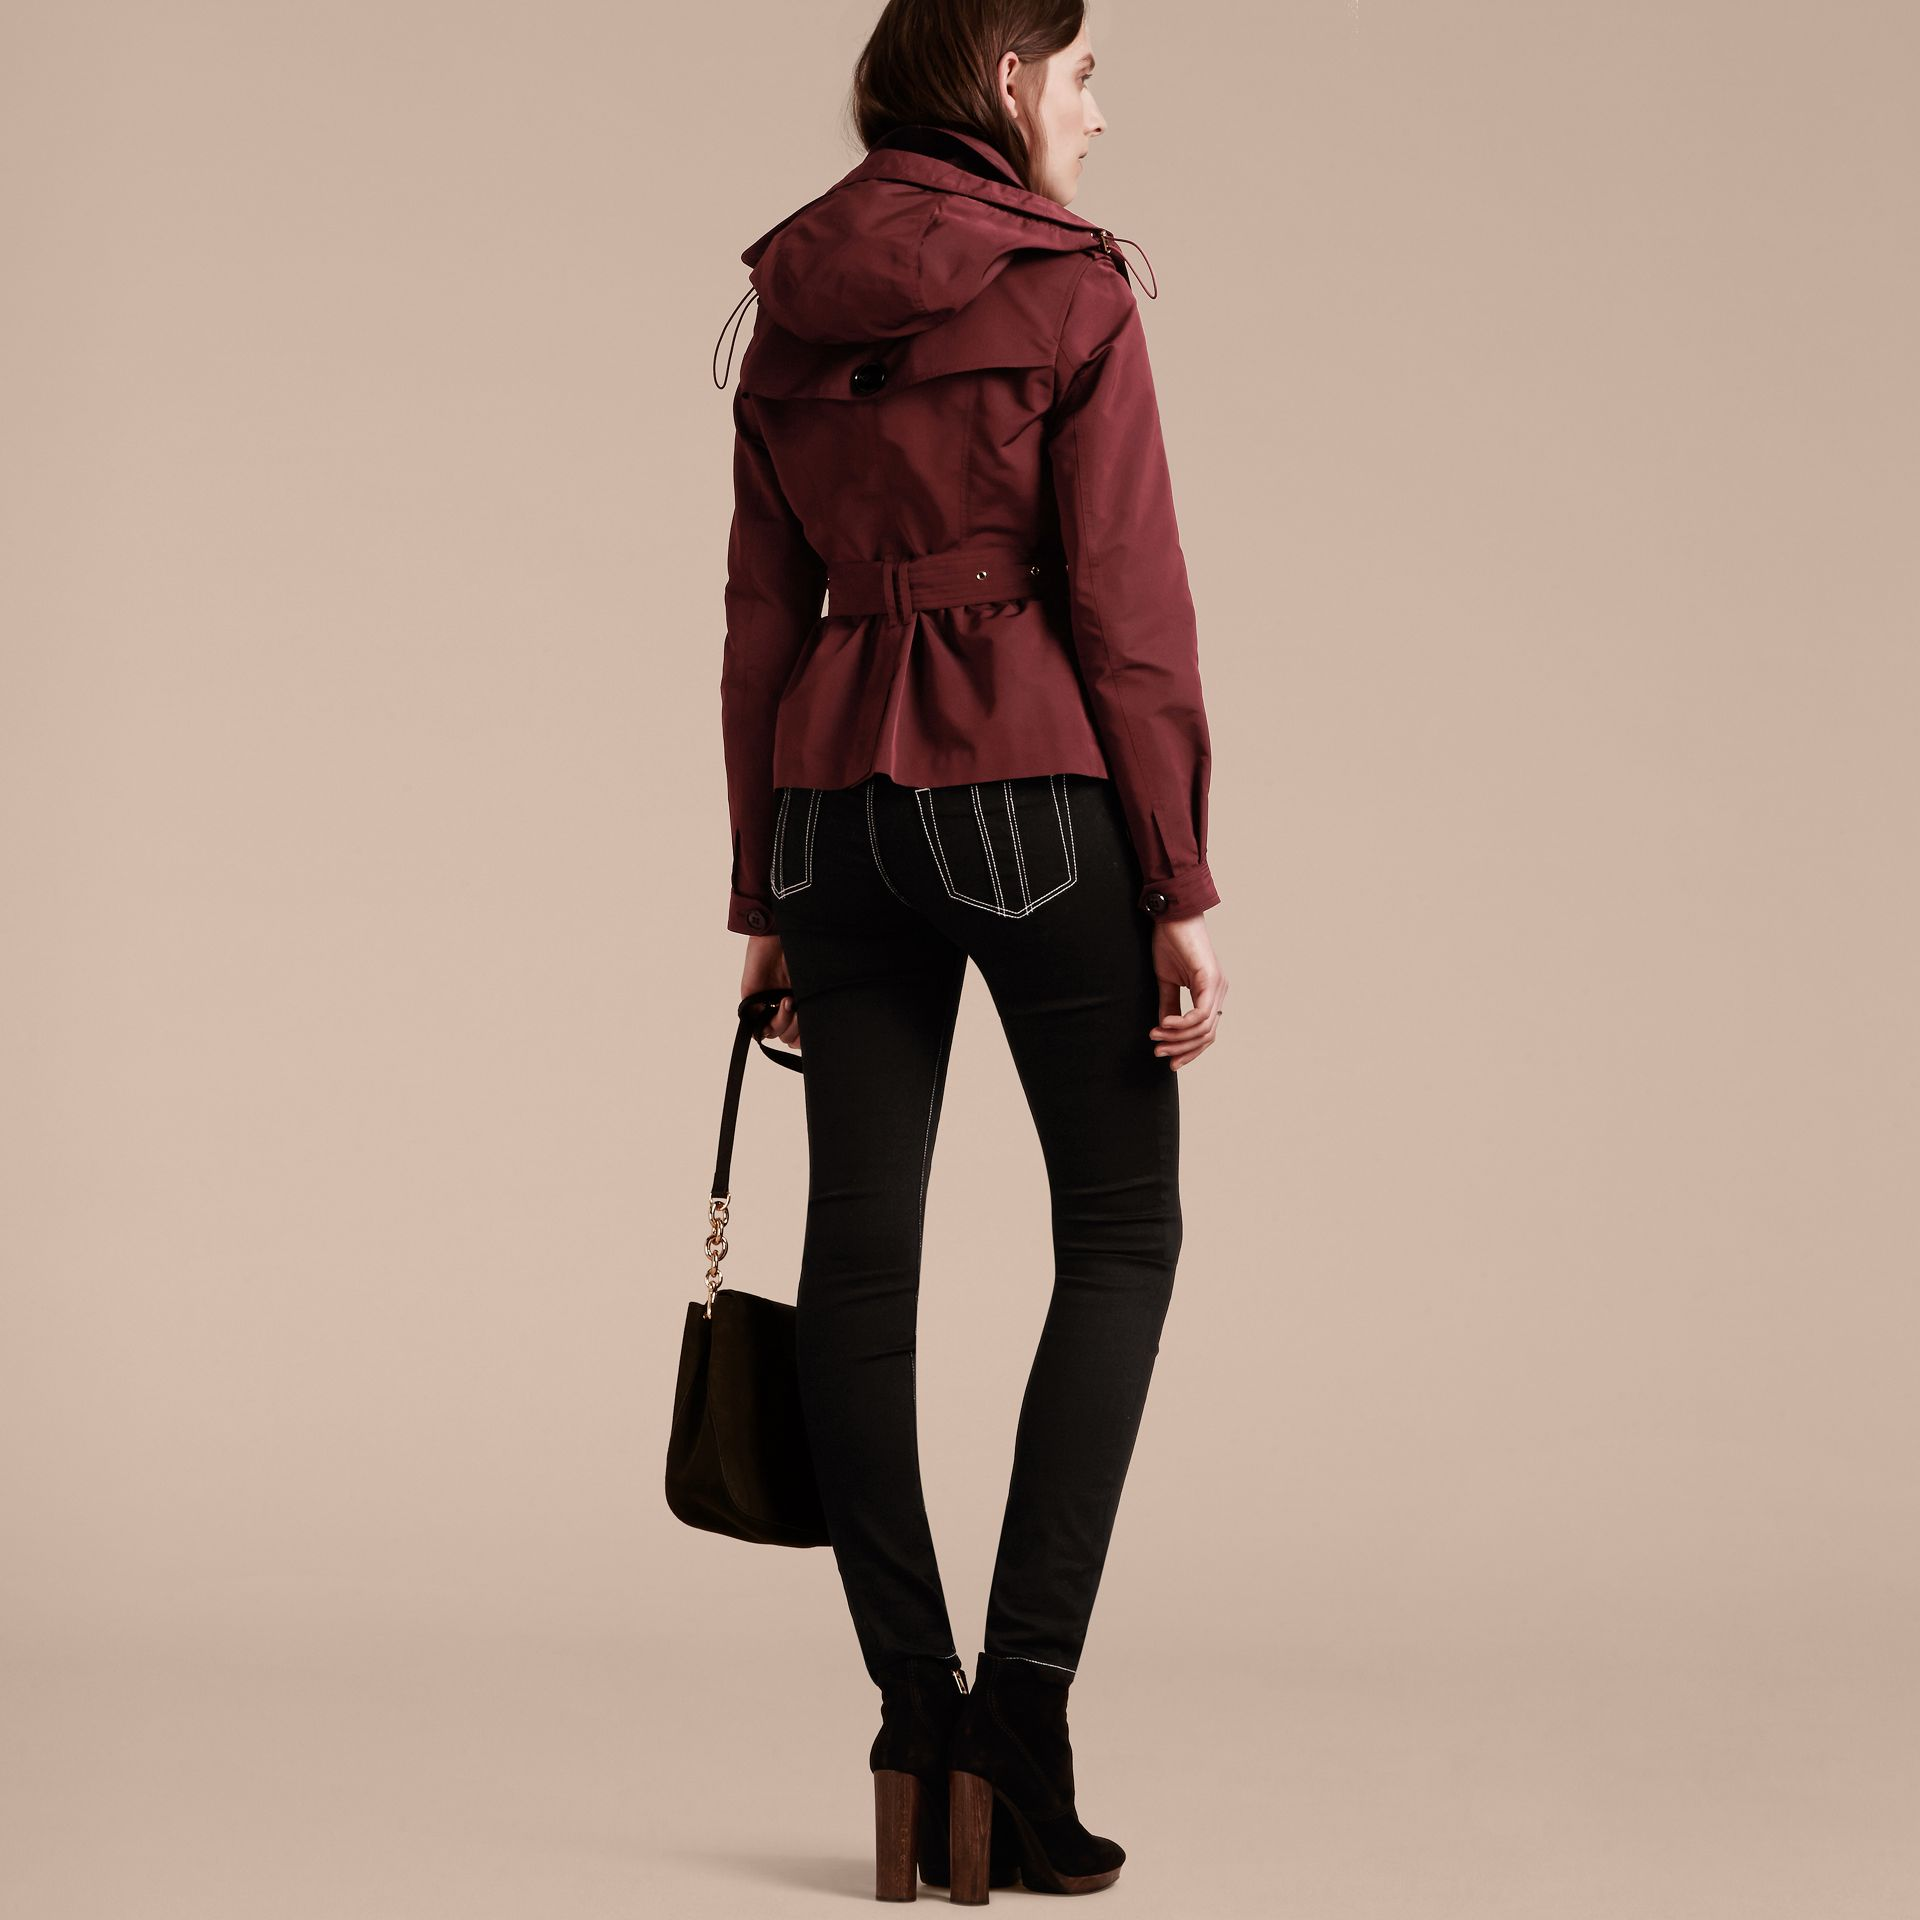 Deep claret Showerproof Taffeta Trench Jacket with Detachable Hood Deep Claret - gallery image 3